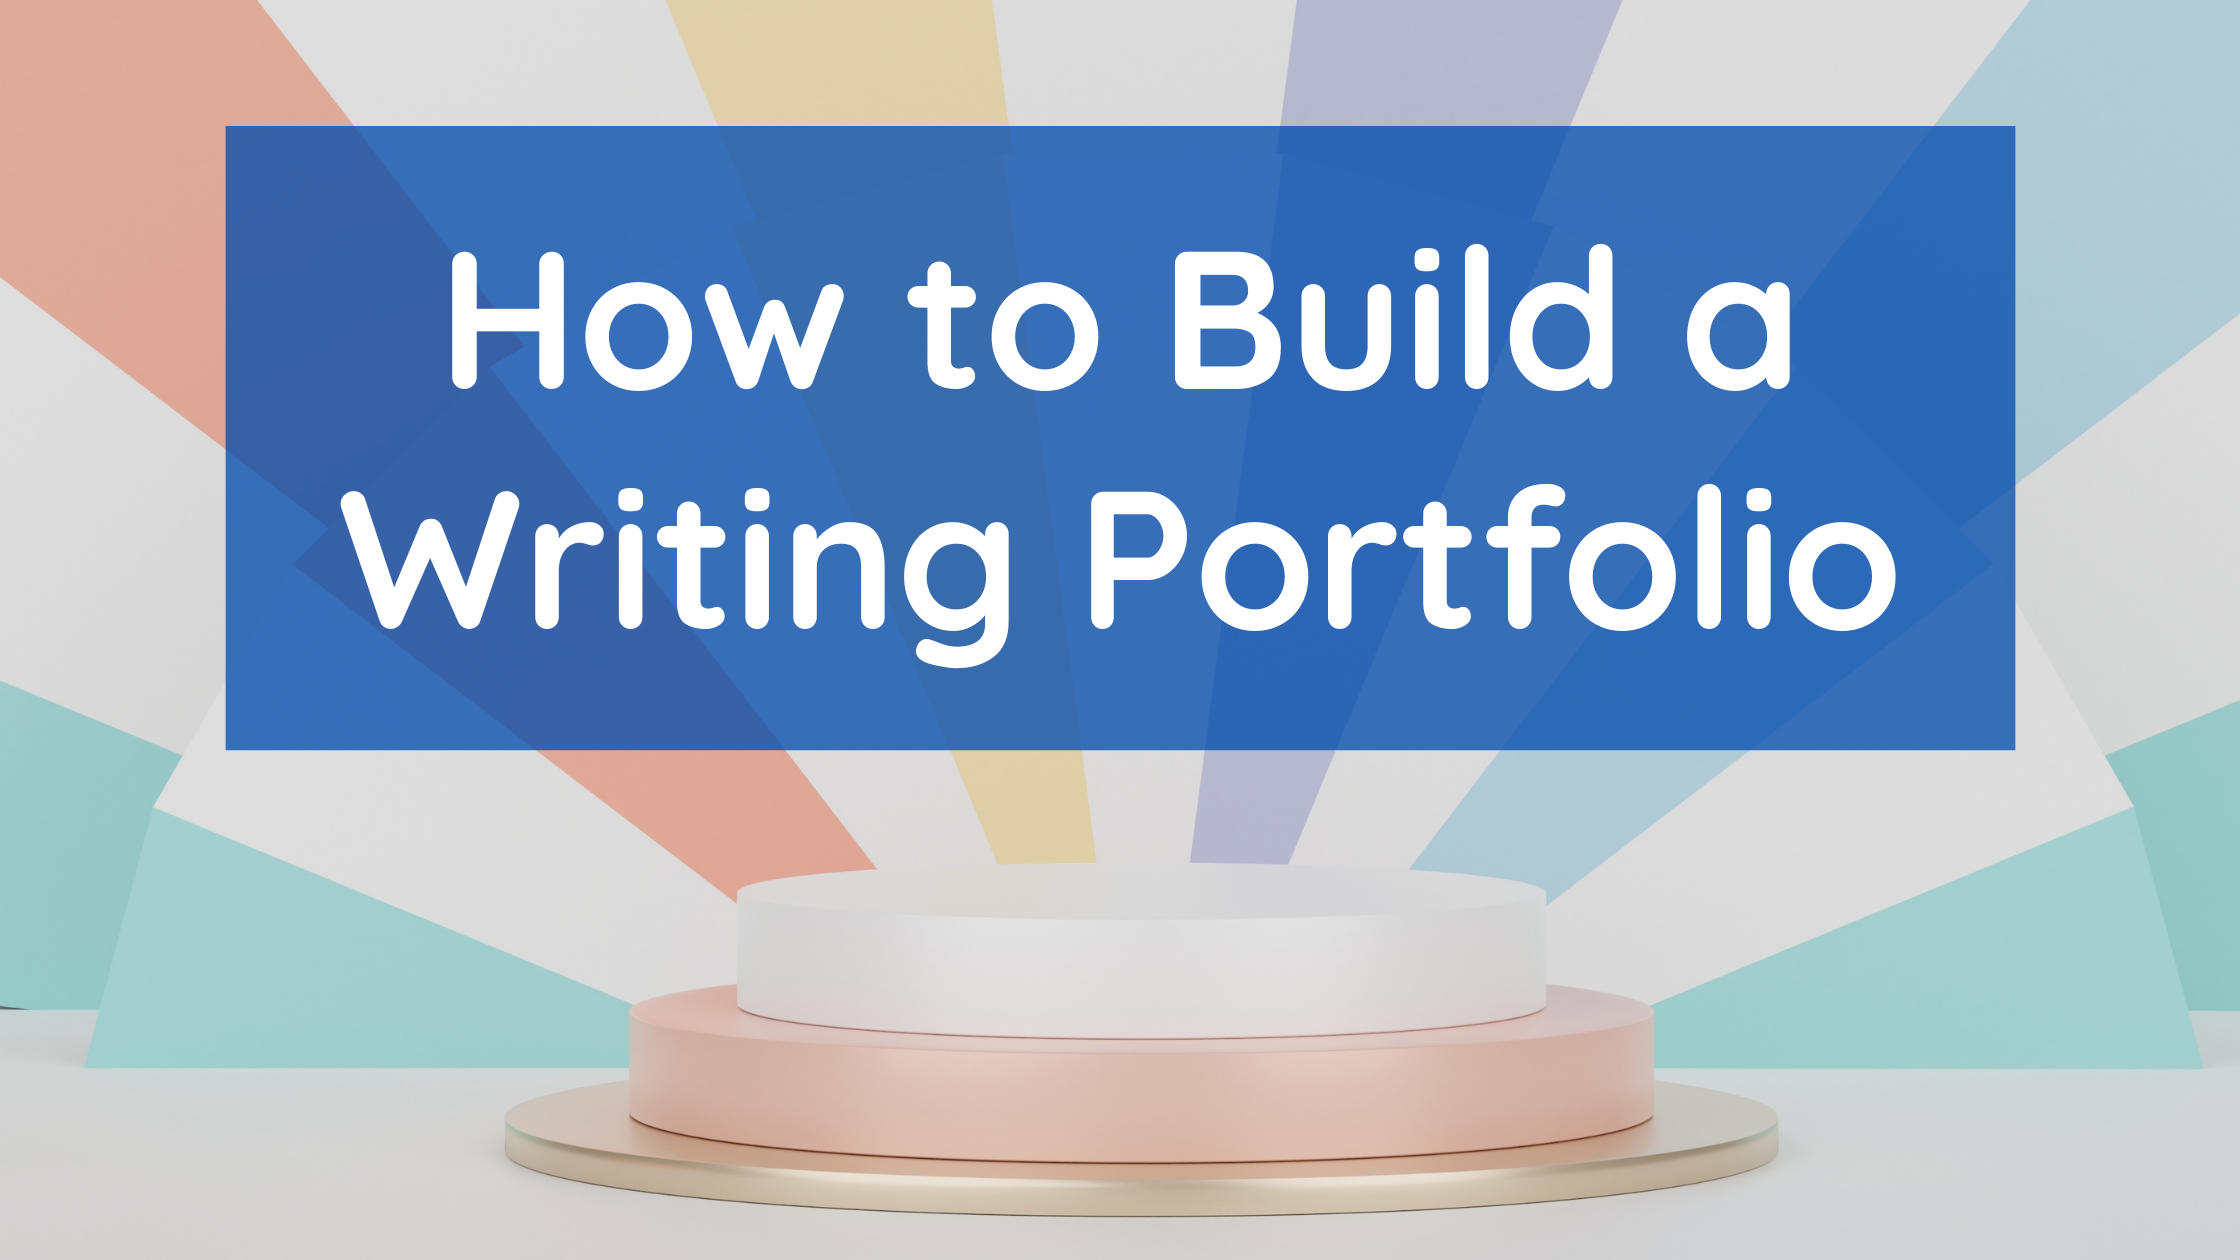 what should a writing portfolio have, how to build a writing portfolio, what is a writing portfolio for students, where can I create a writing portfolio, what to include in a writing portfolio, how to create writing samples